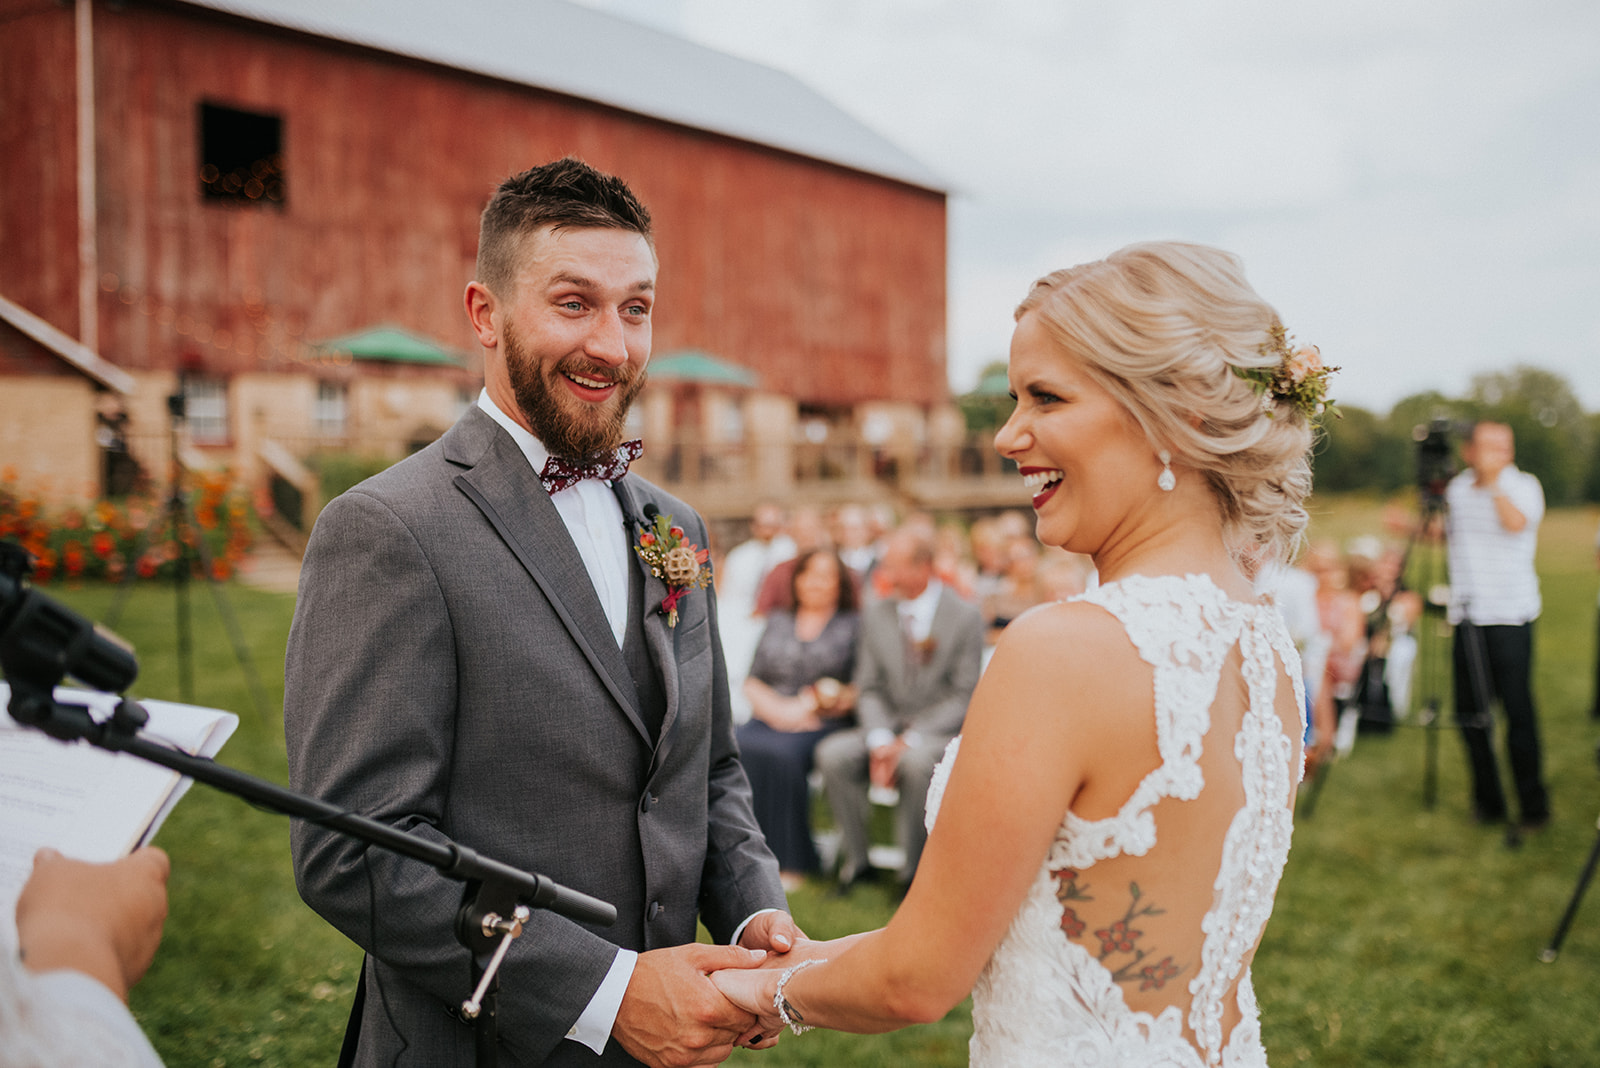 overthevineswisconsinwedding_0672.jpg